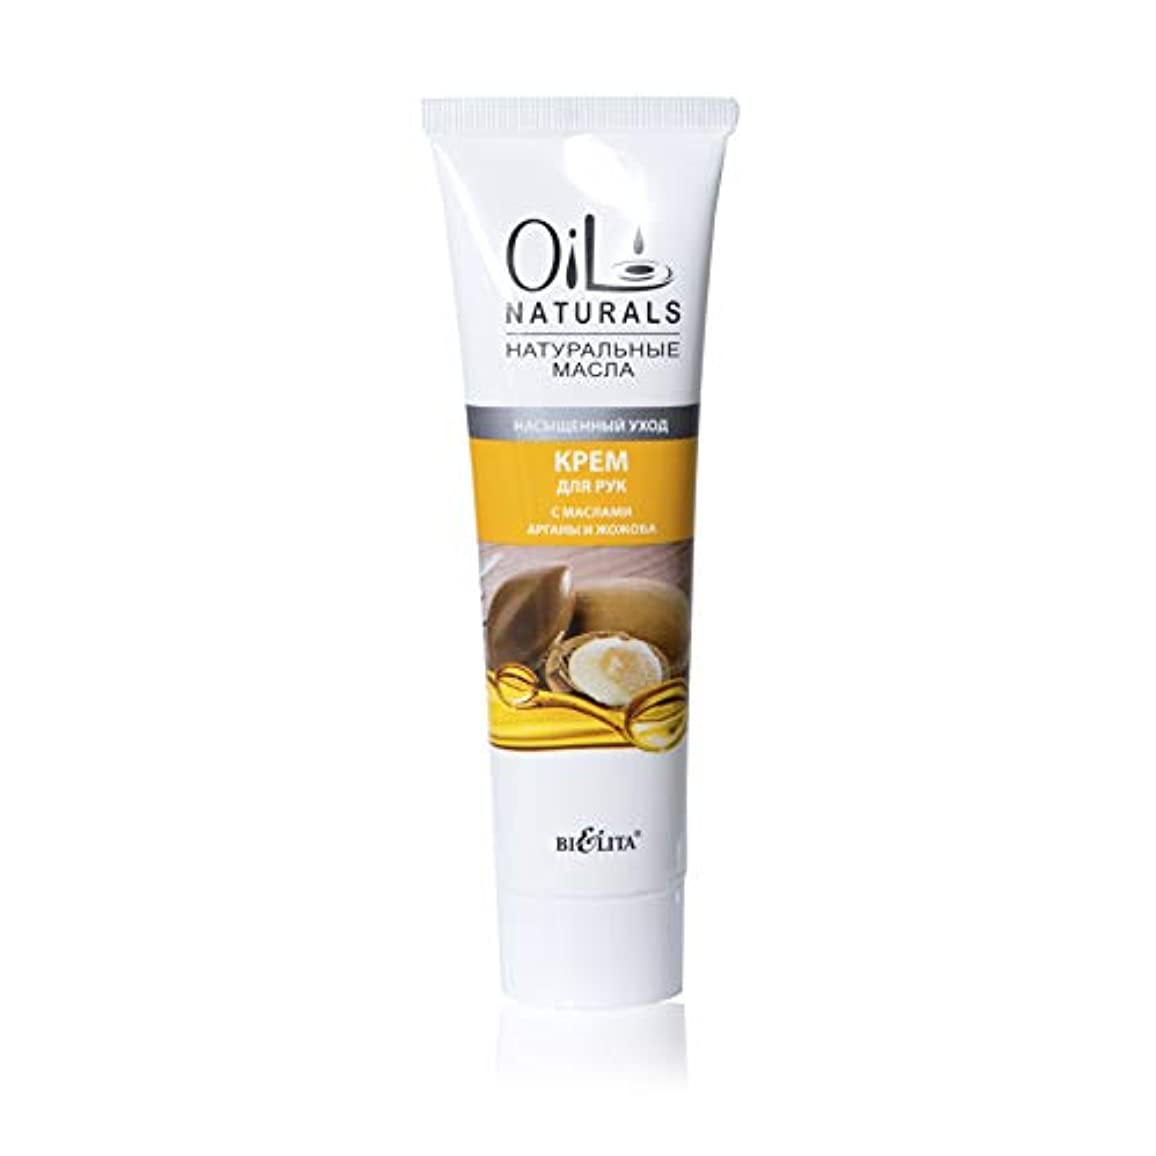 Bielita & Vitex Oil Naturals Line | Saturate Care Hand Cream, 100 ml | Argan Oil, Silk Proteins, Jojoba Oil, Vitamins